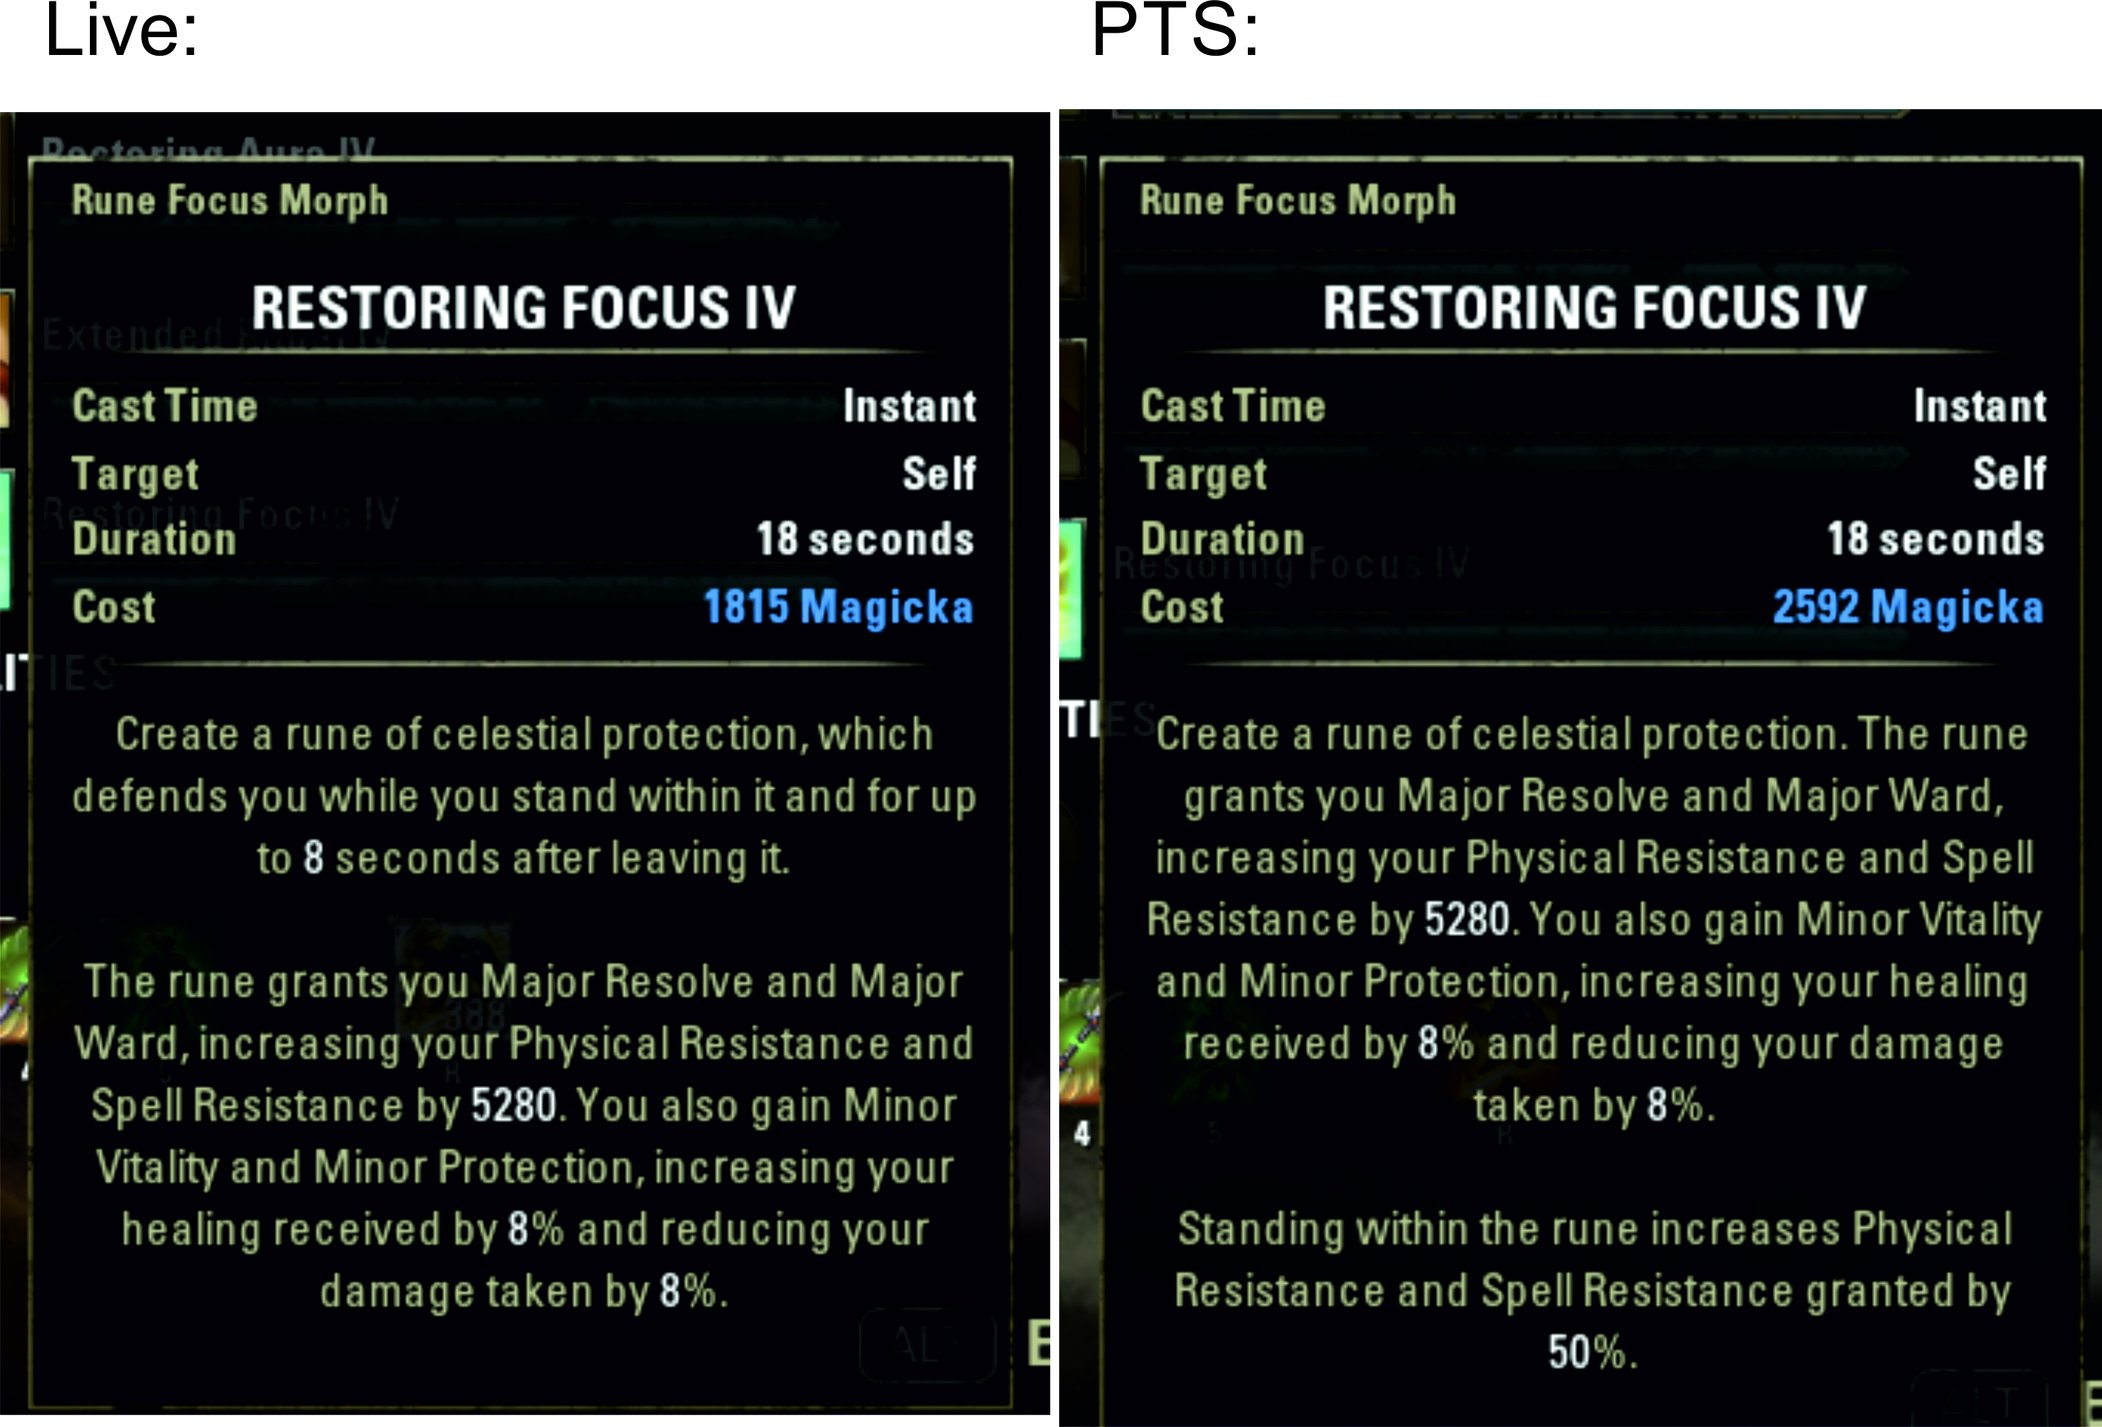 How to recover the PTS in case of its loss